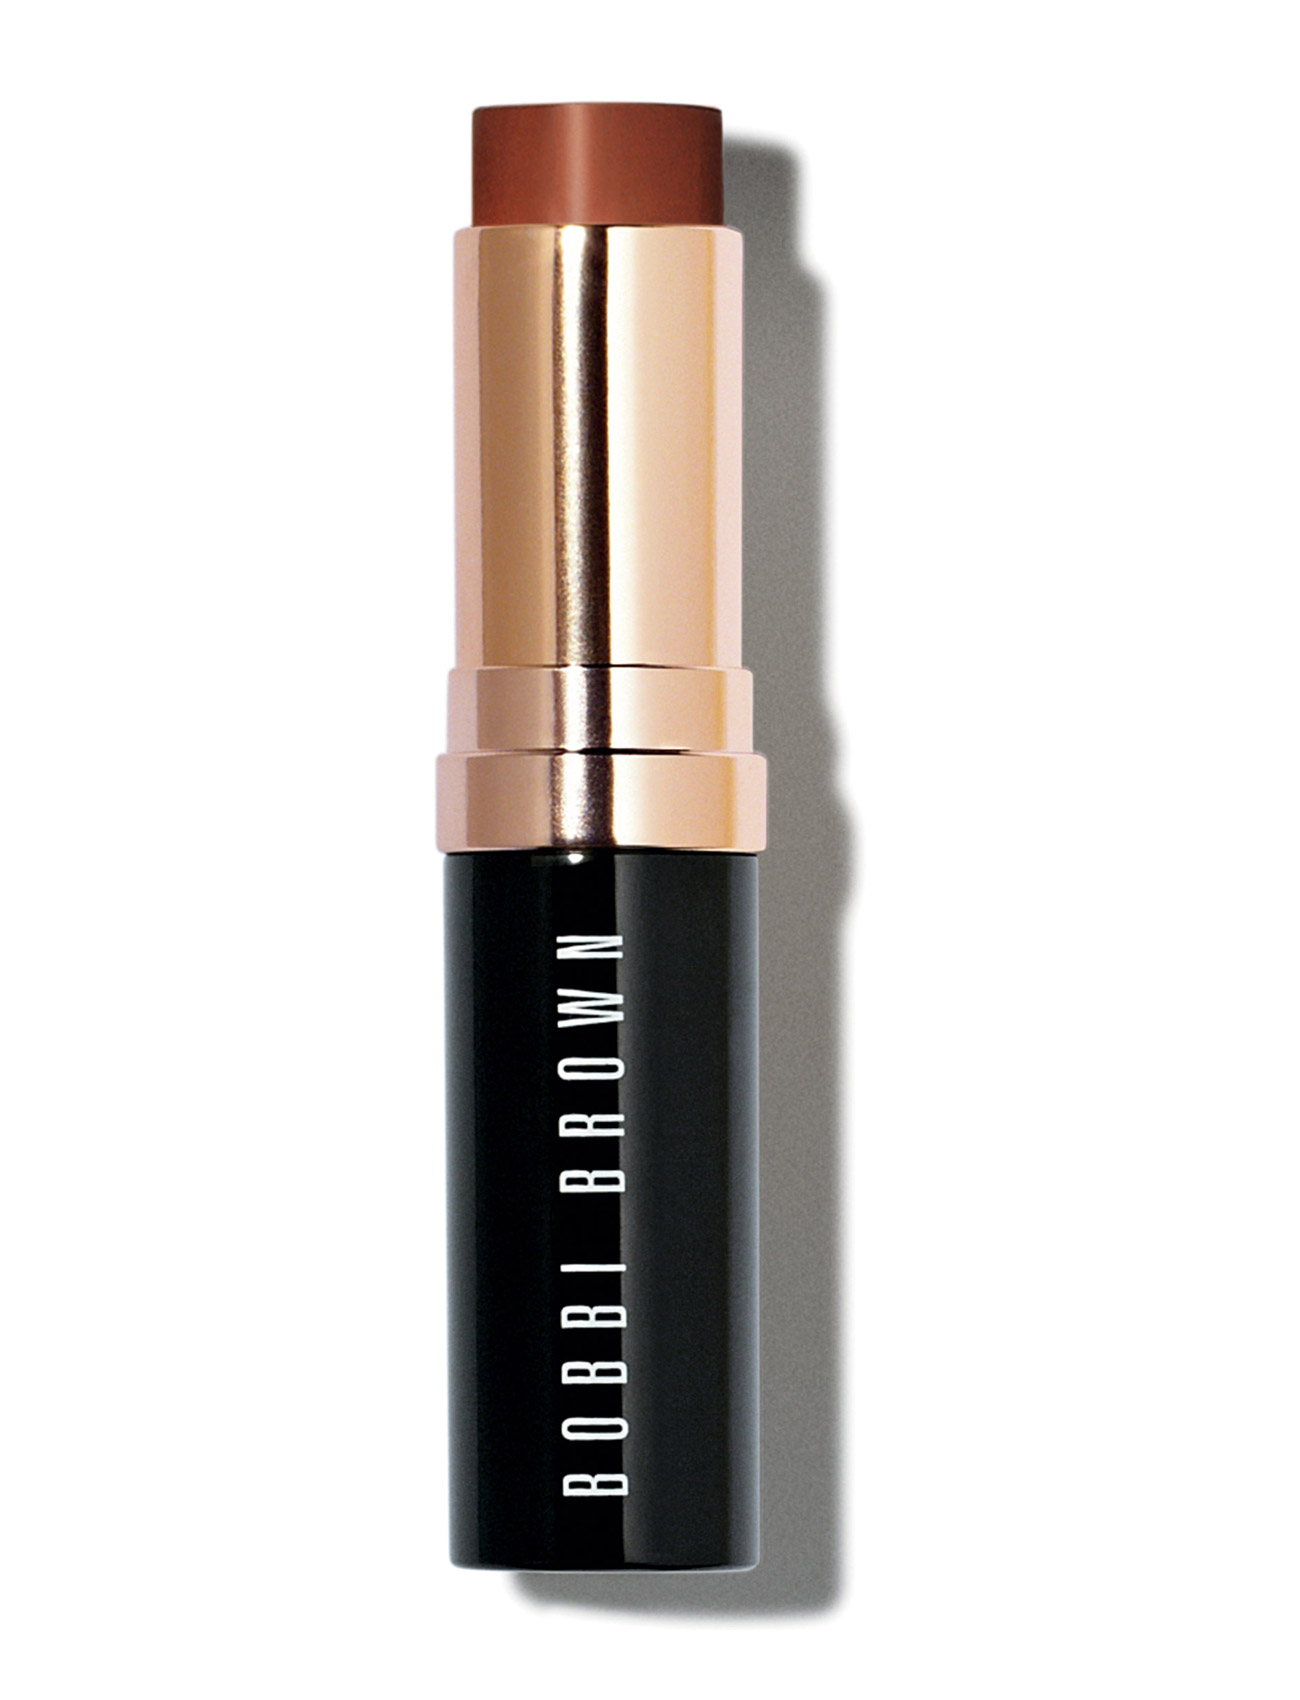 bobbi brown – Skin foundation stick, beige 3 på boozt.com dk